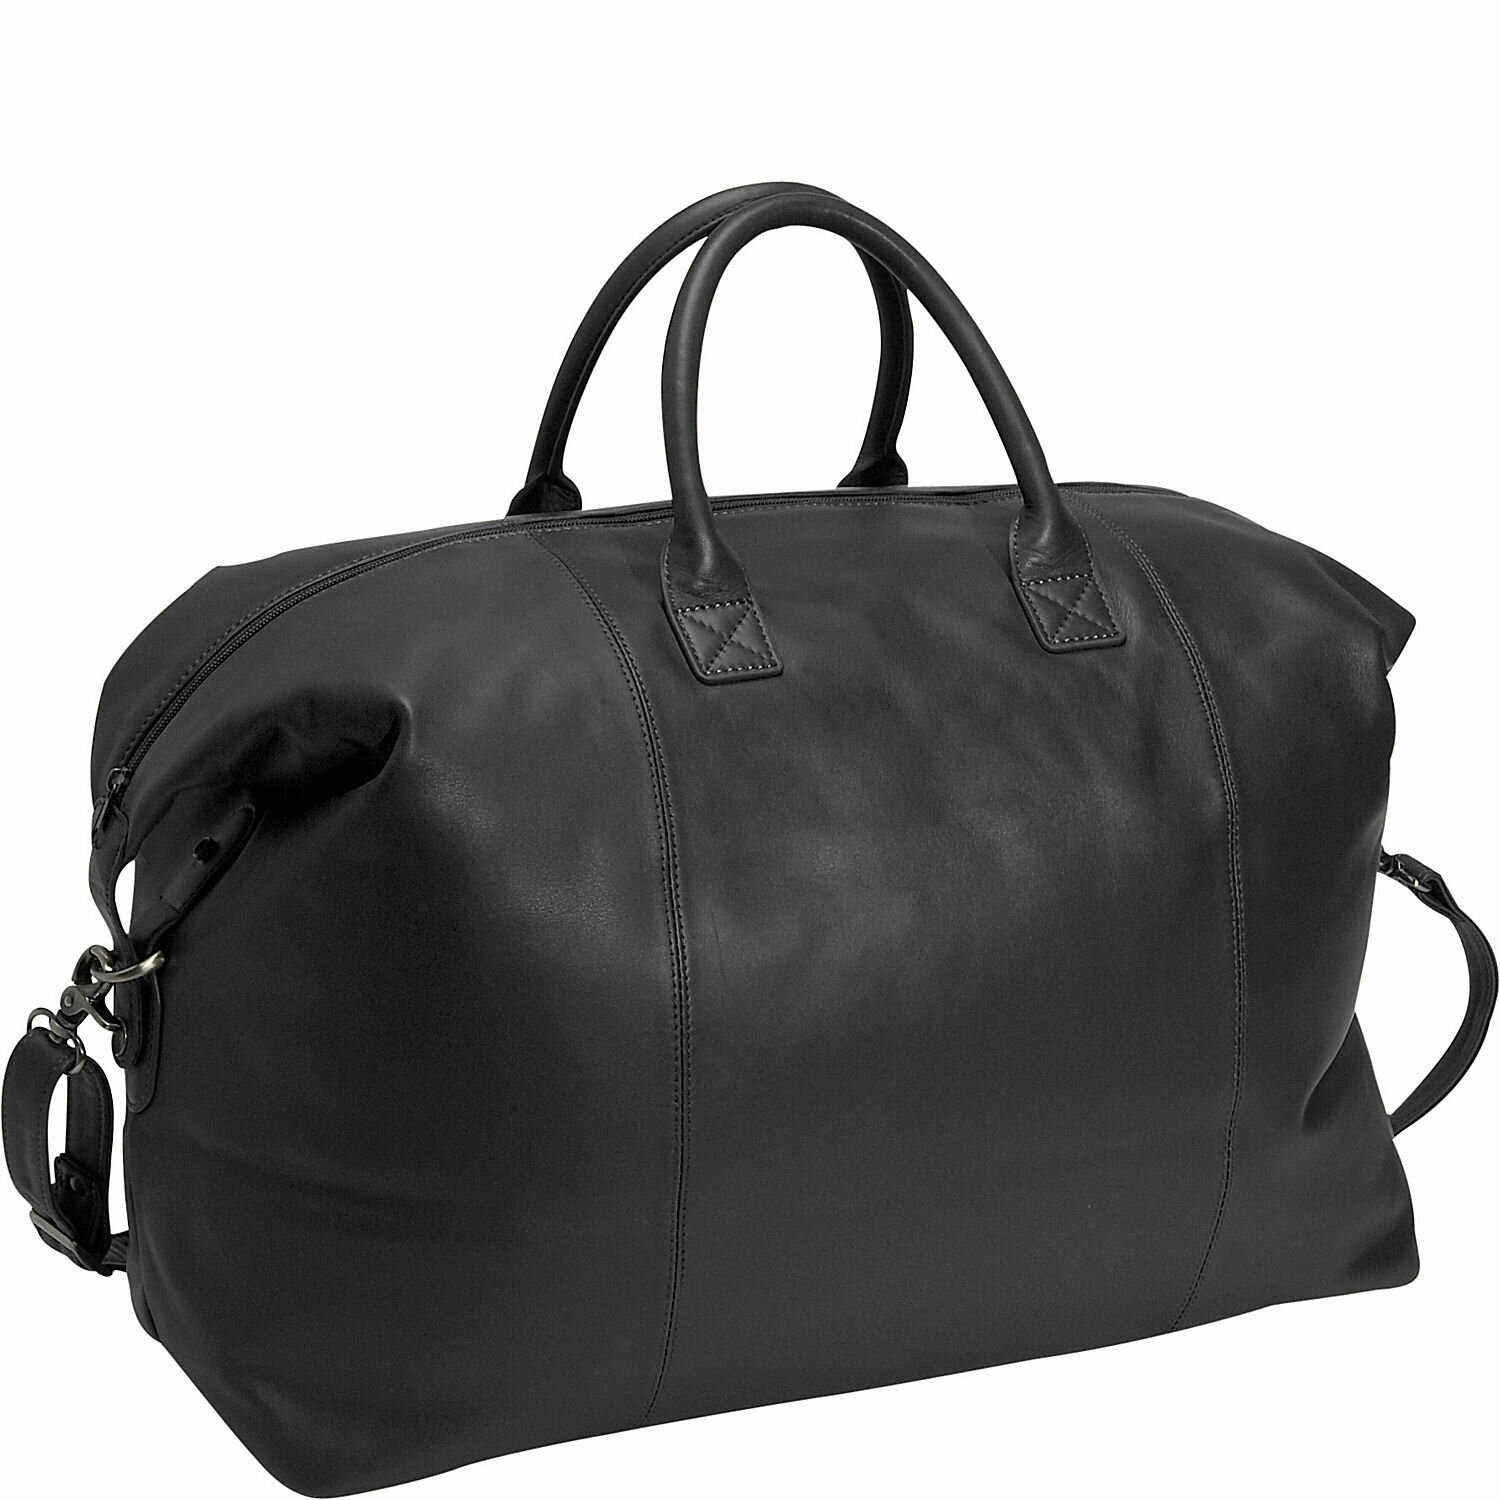 Royce Leather Royce Leather Luxury Travel Duffel Overnight Bag in Genuine  Leather  9cead296d57f3